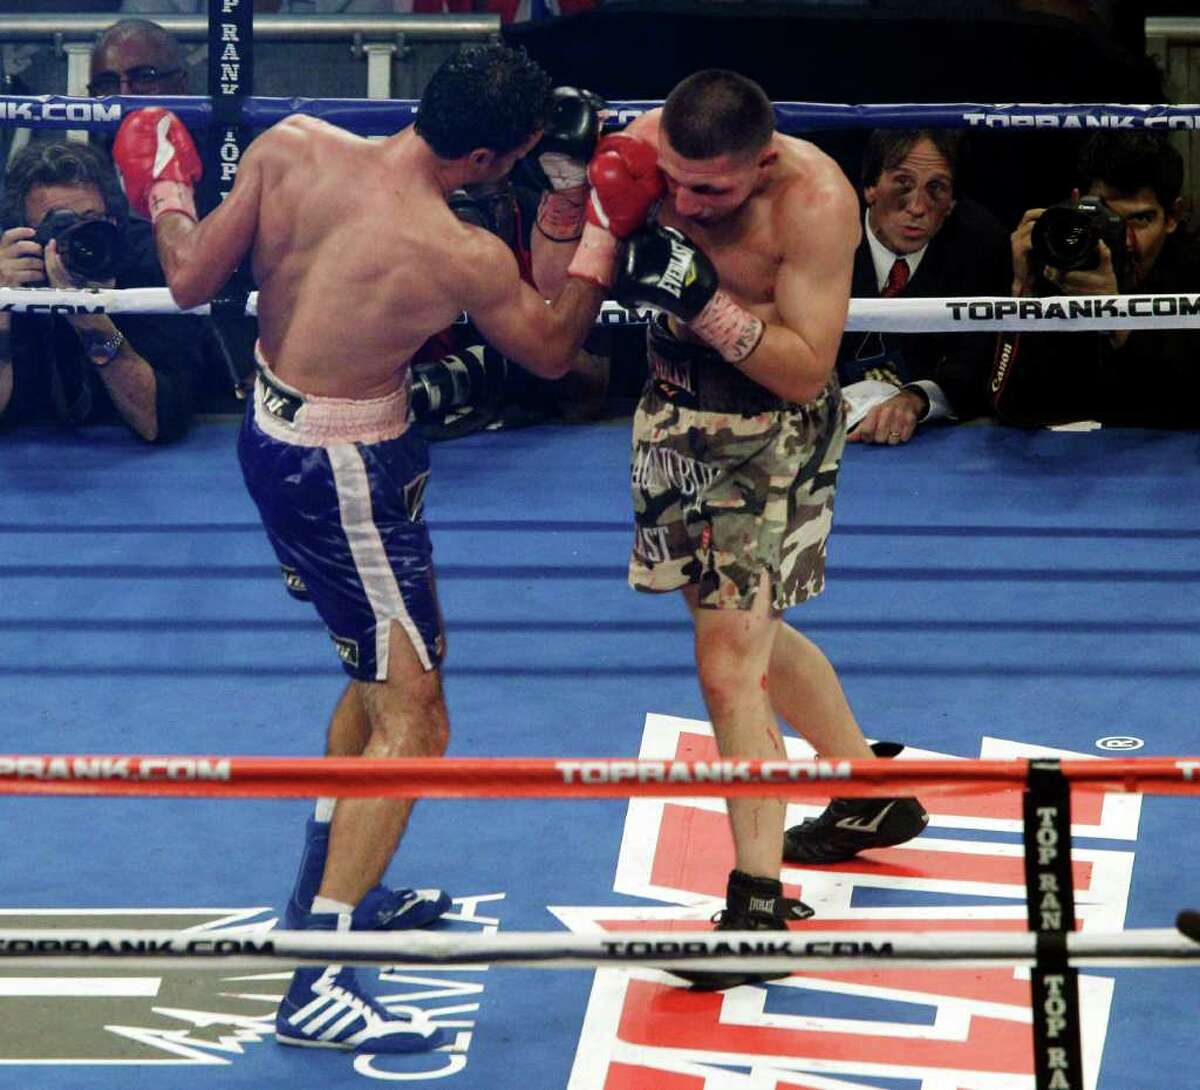 Devlin Rodriguez, left, punches Pawel Wolak during the IBA junior middleweight championship boxing match, Saturday, Dec. 3, 2011, at Madison Square Garden in New York. (AP Photo/Mary Altaffer)